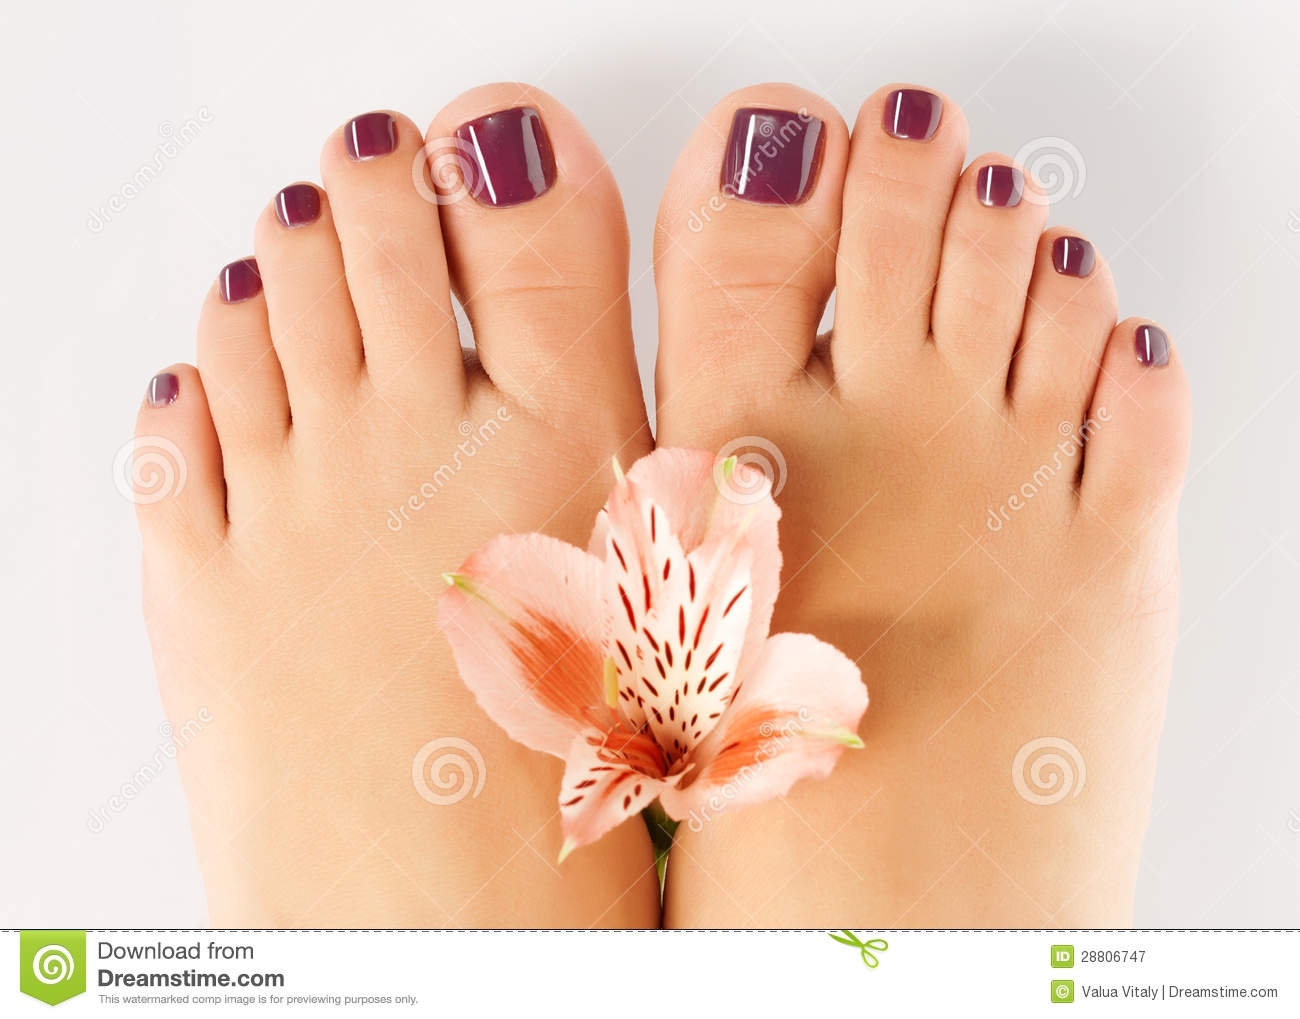 Female feet galleries